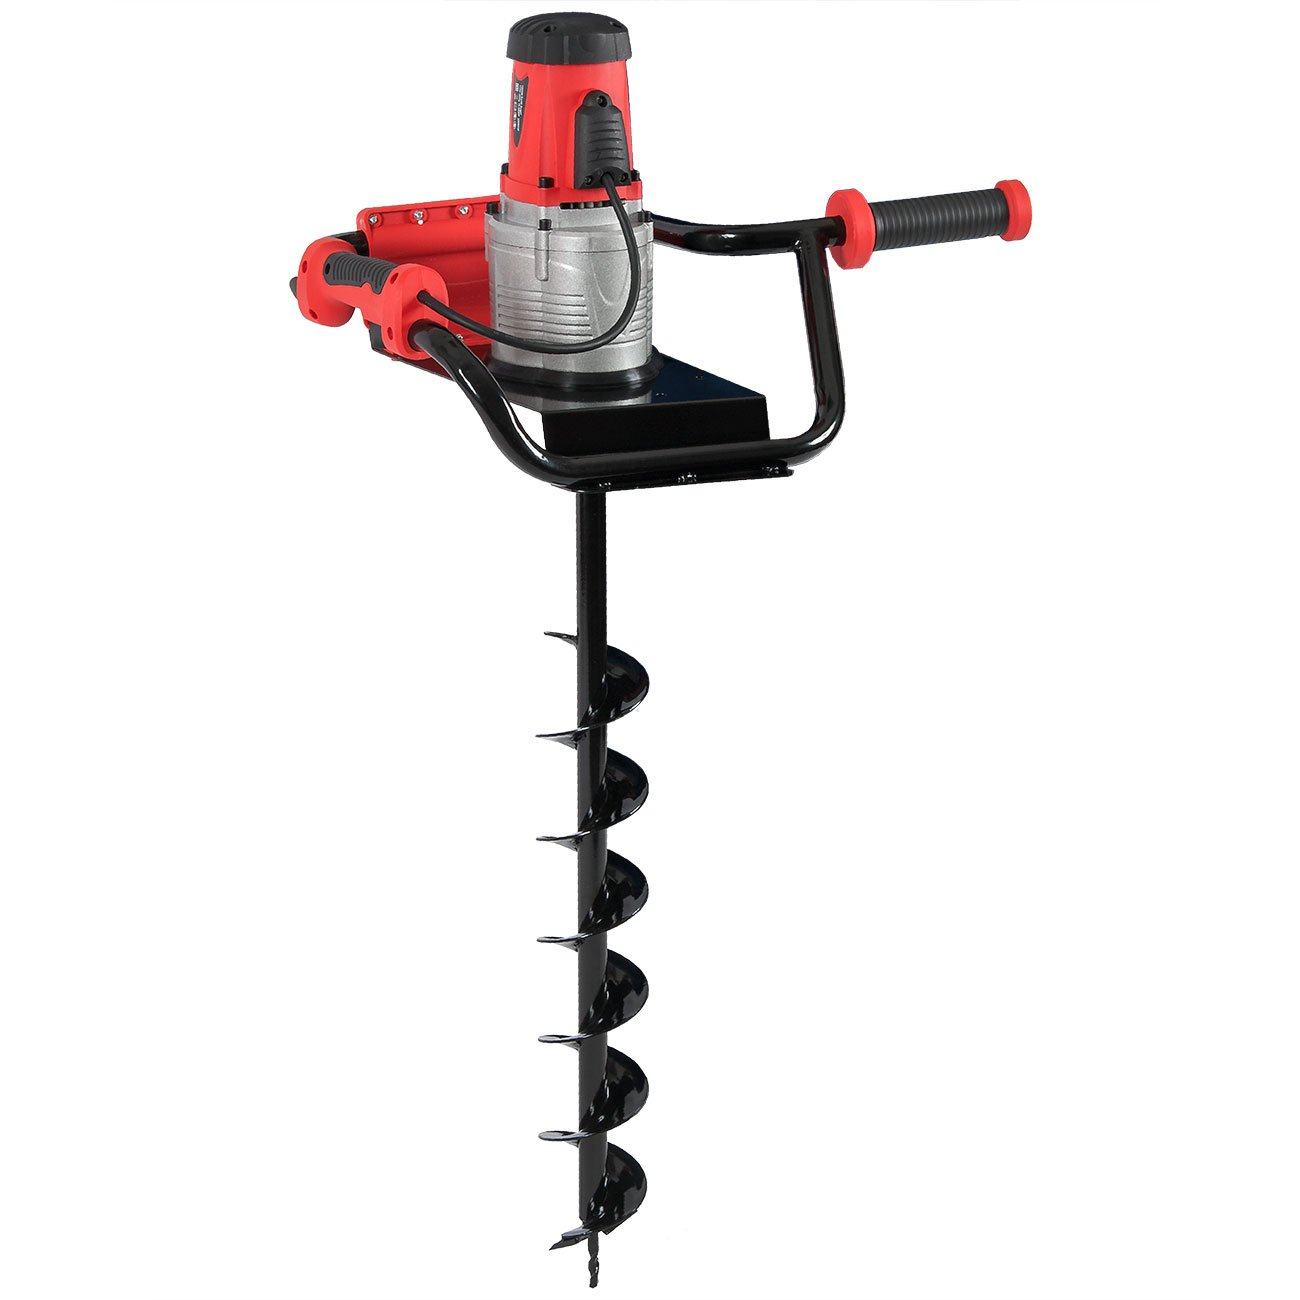 ARKSEN 1200W 1.6HP Electric Post Hole Digger Auger Earth Ice w/ 4 inch Auger Bits Set